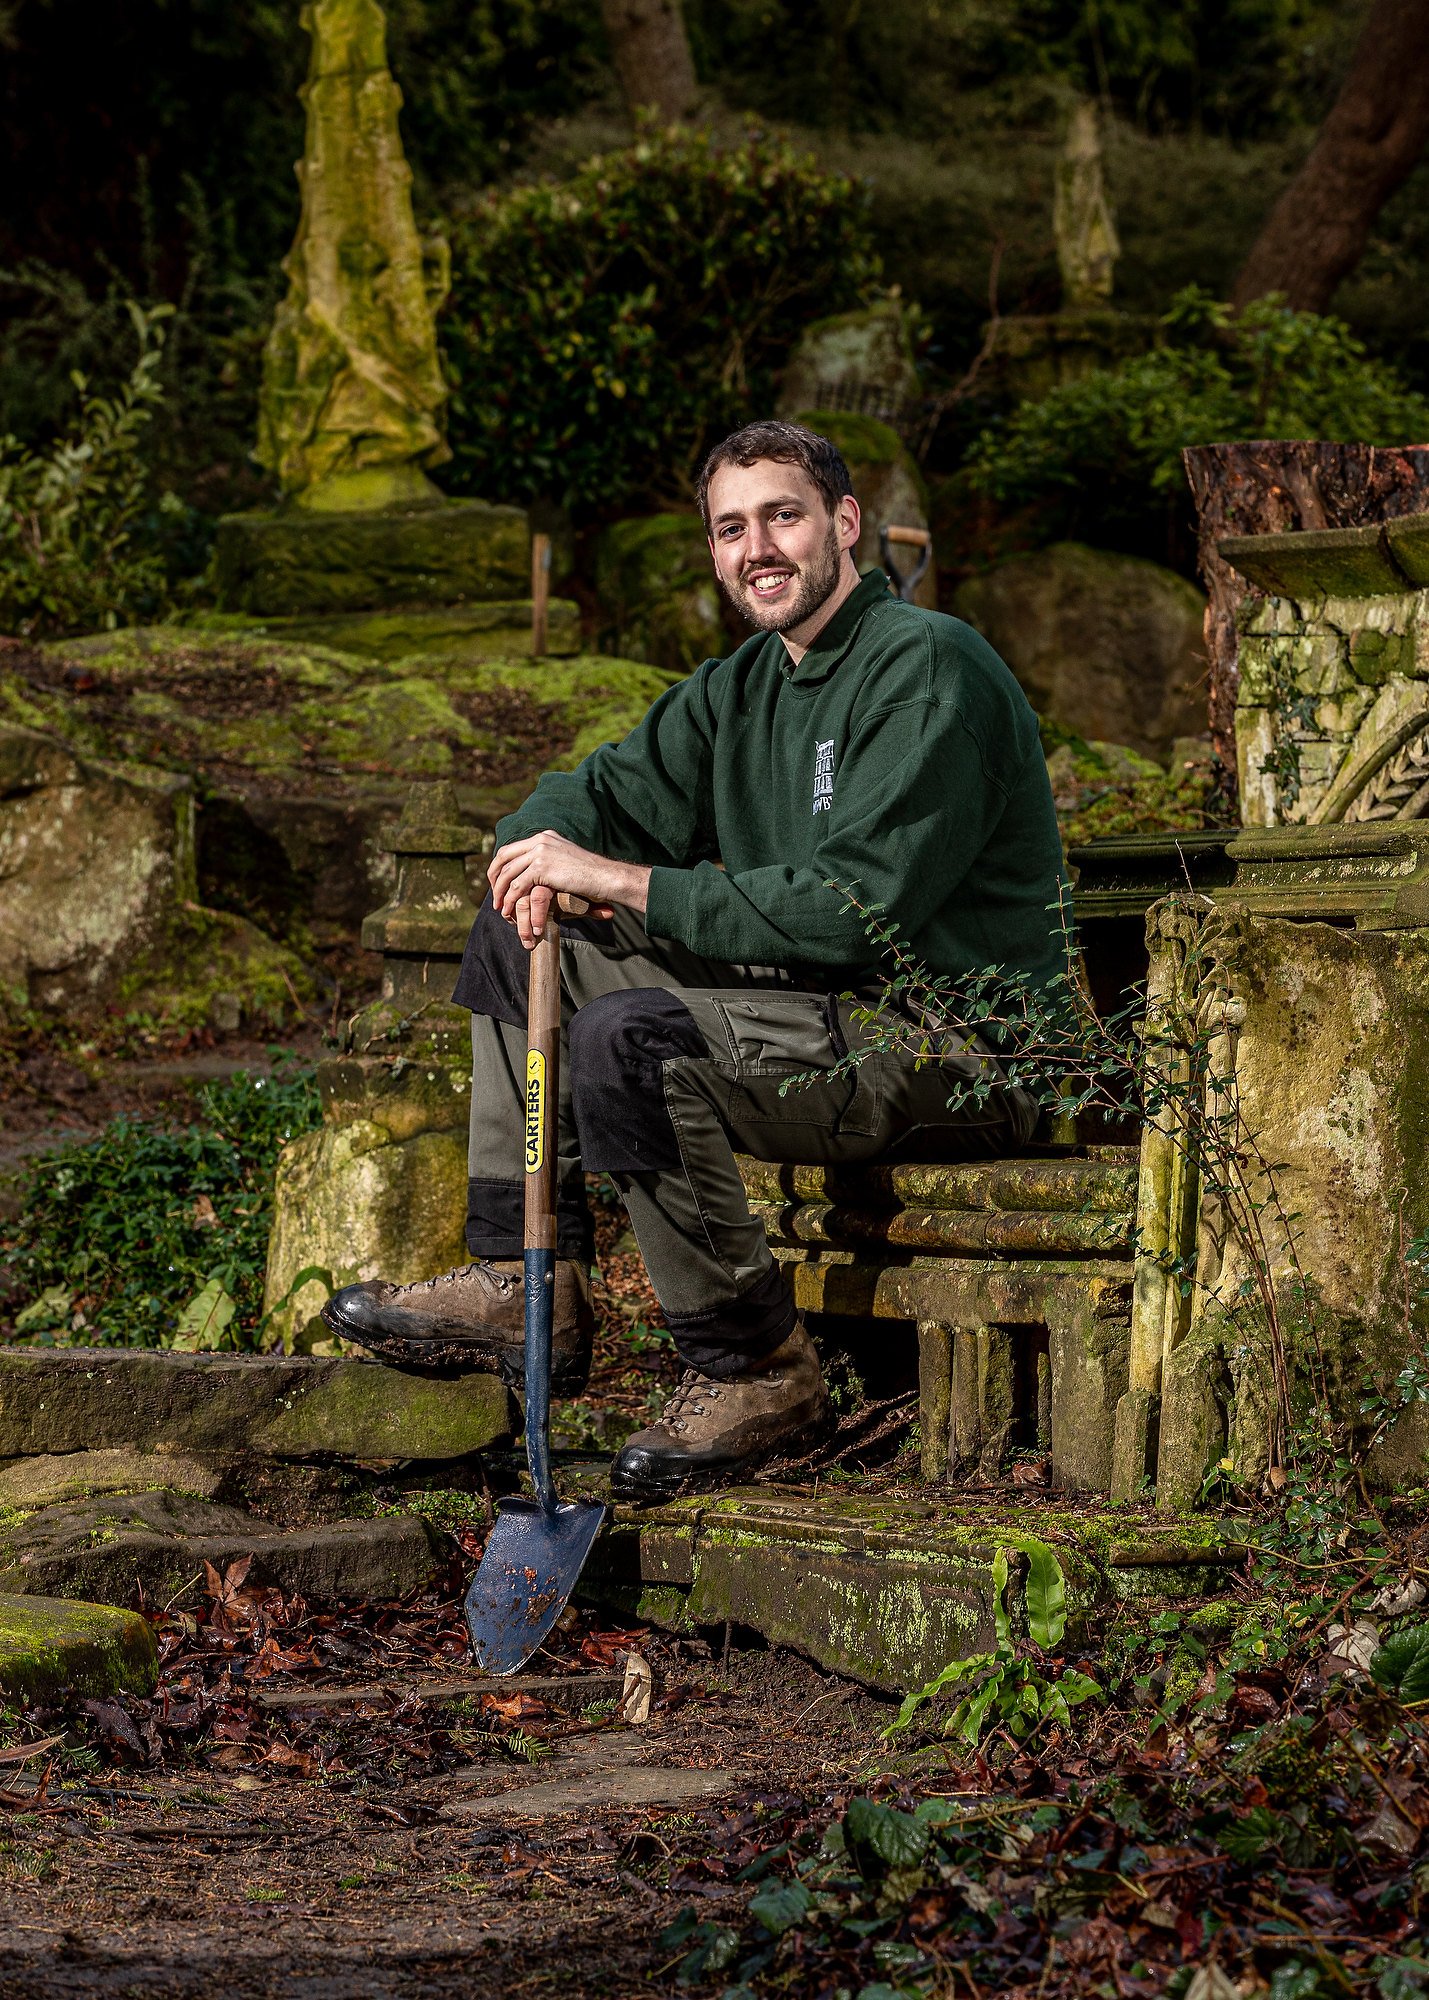 Rock Garden Restoration, Newby Hall, North Yorkshire UK